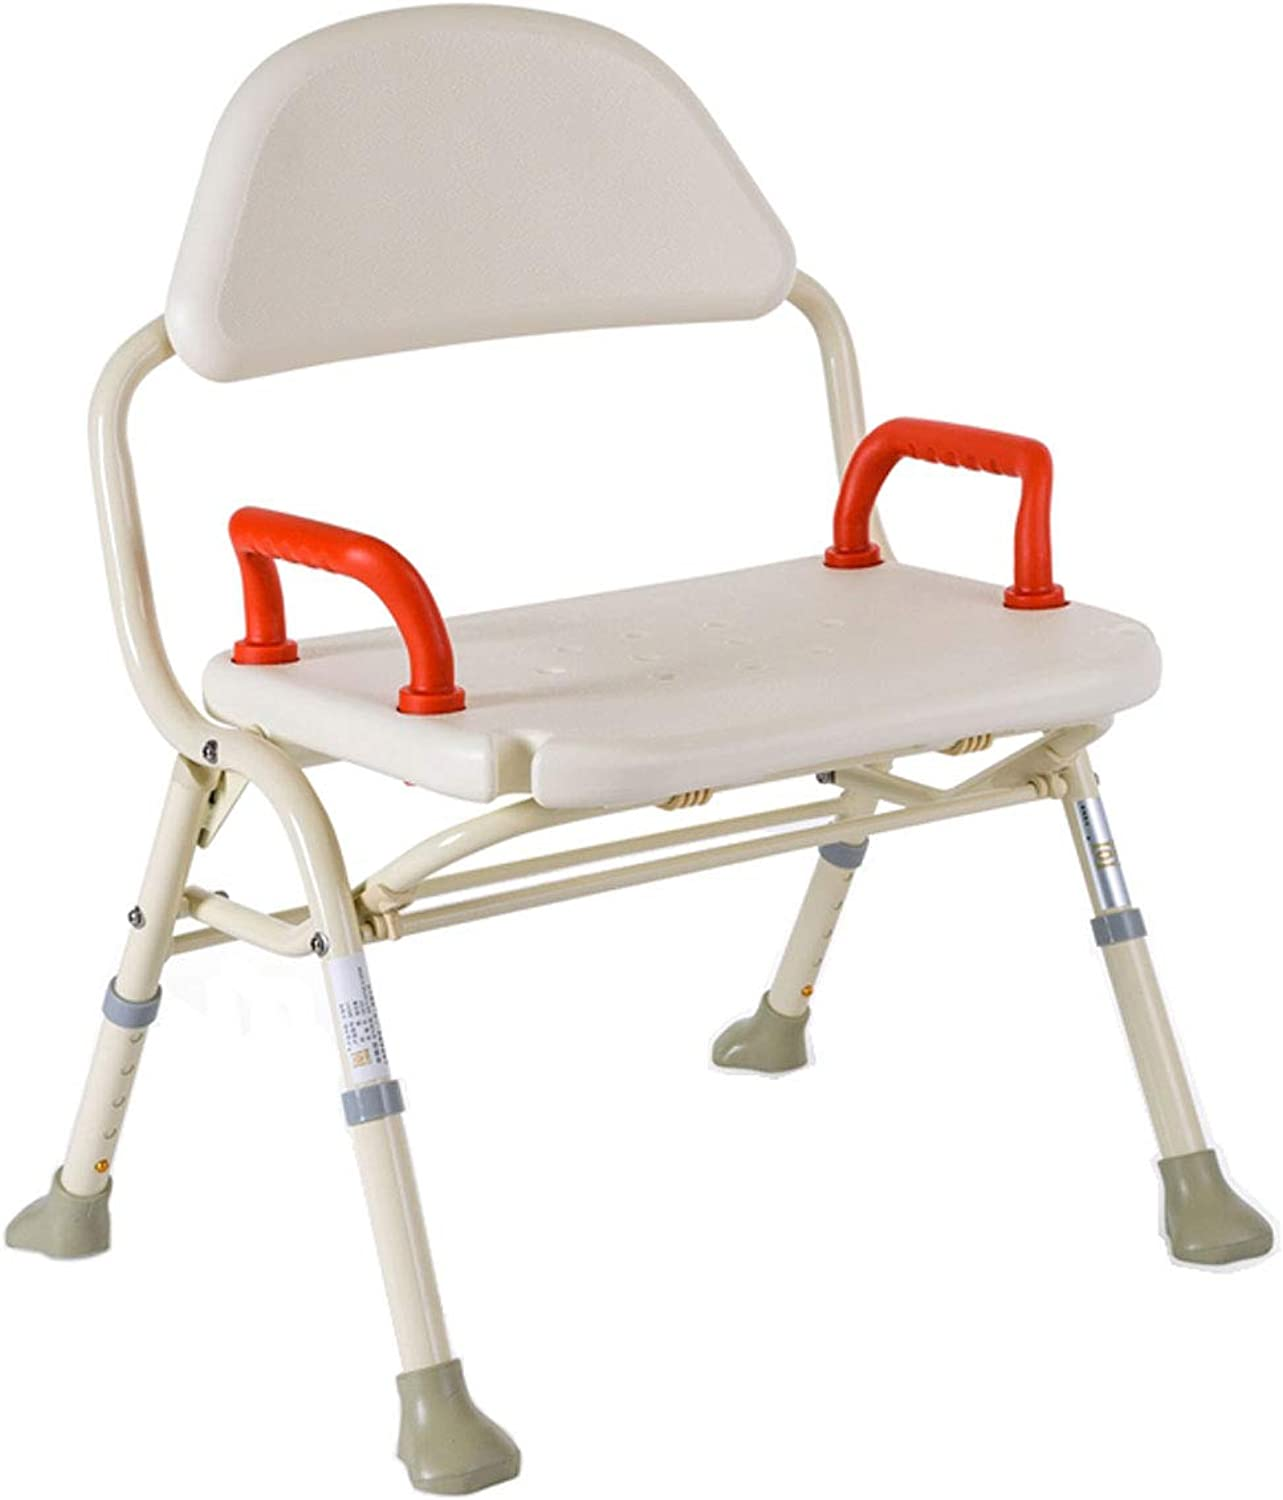 Folding Bath Seat Shower Bench Height Adjustable with Arm & Back